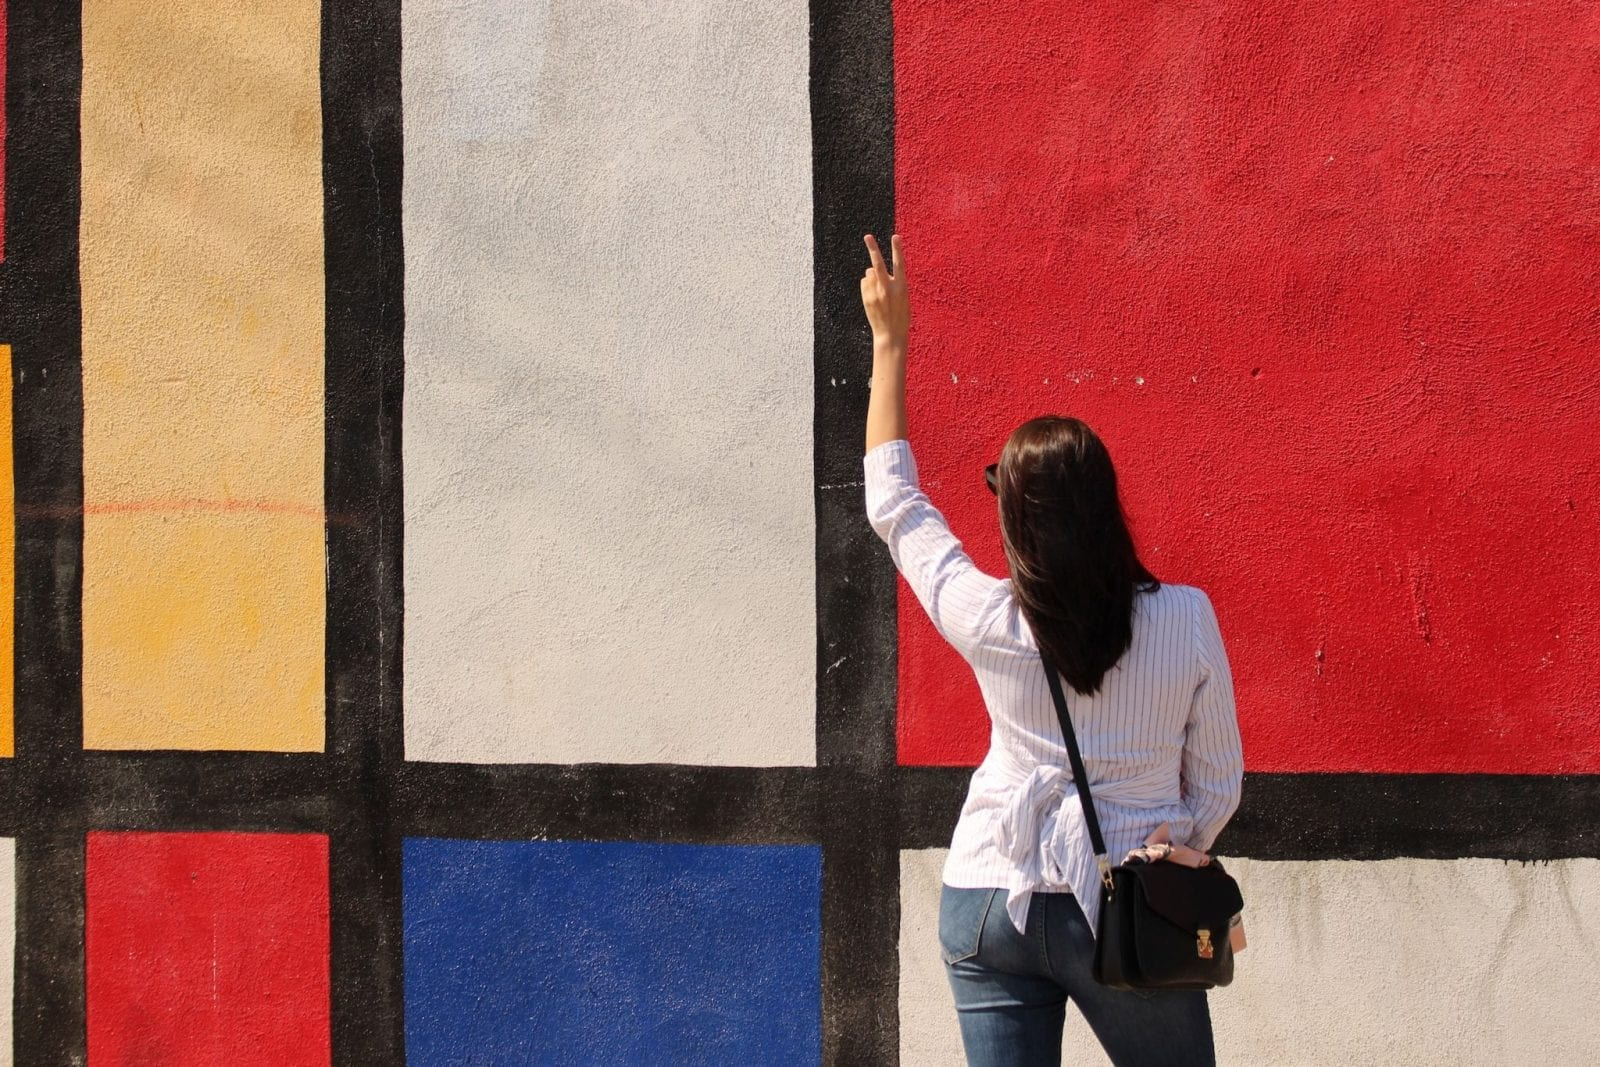 This is a photo of me against the Mondrian Wall in Los Angeles, holding up the peace sign.